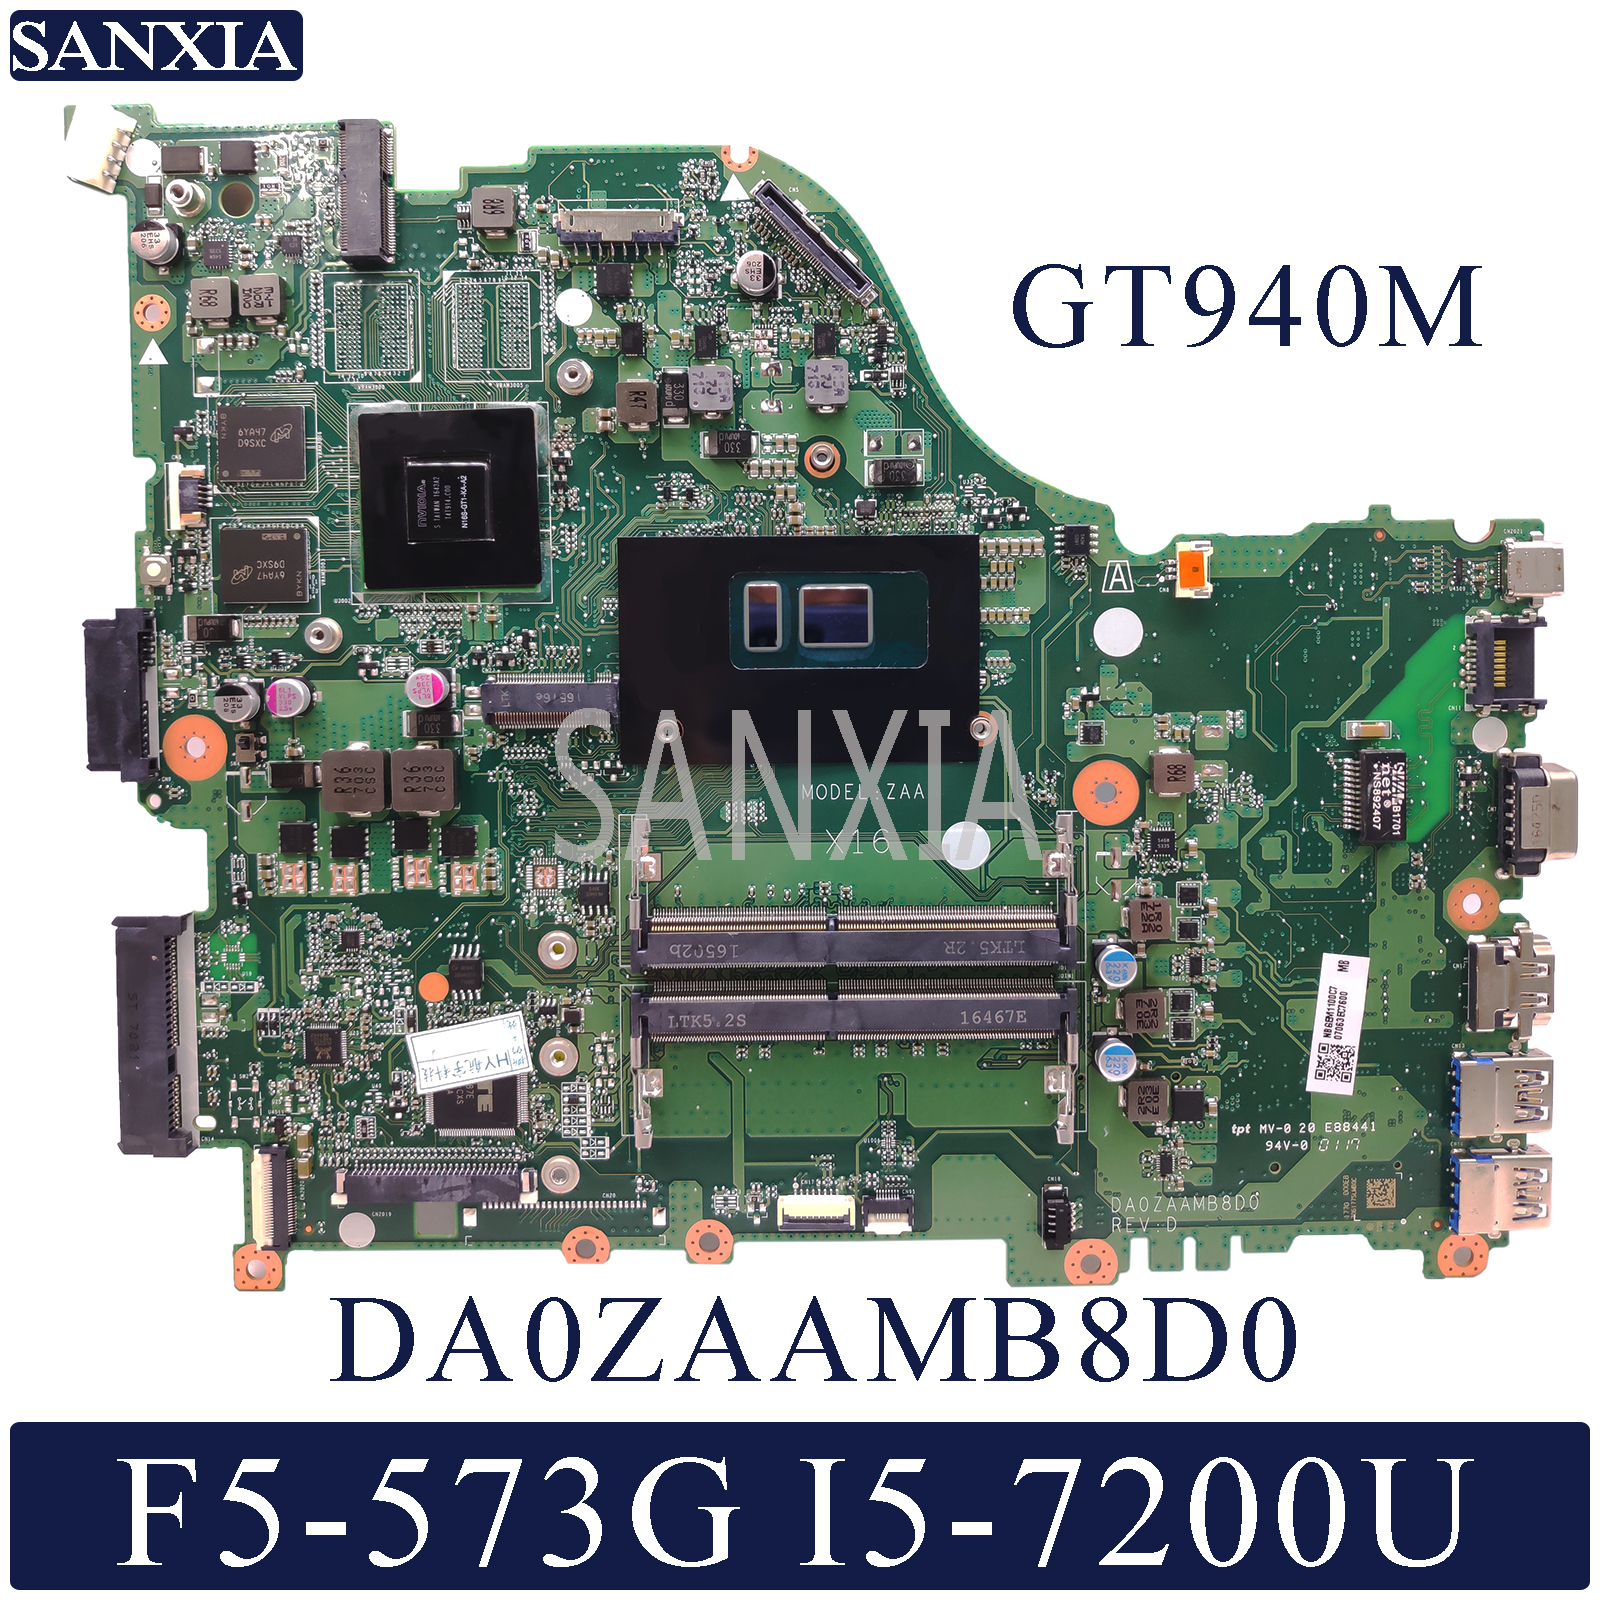 KEFU DA0ZAAMB8D0 Laptop motherboard for font b Acer b font Aspire F5 573G Test original mainboard